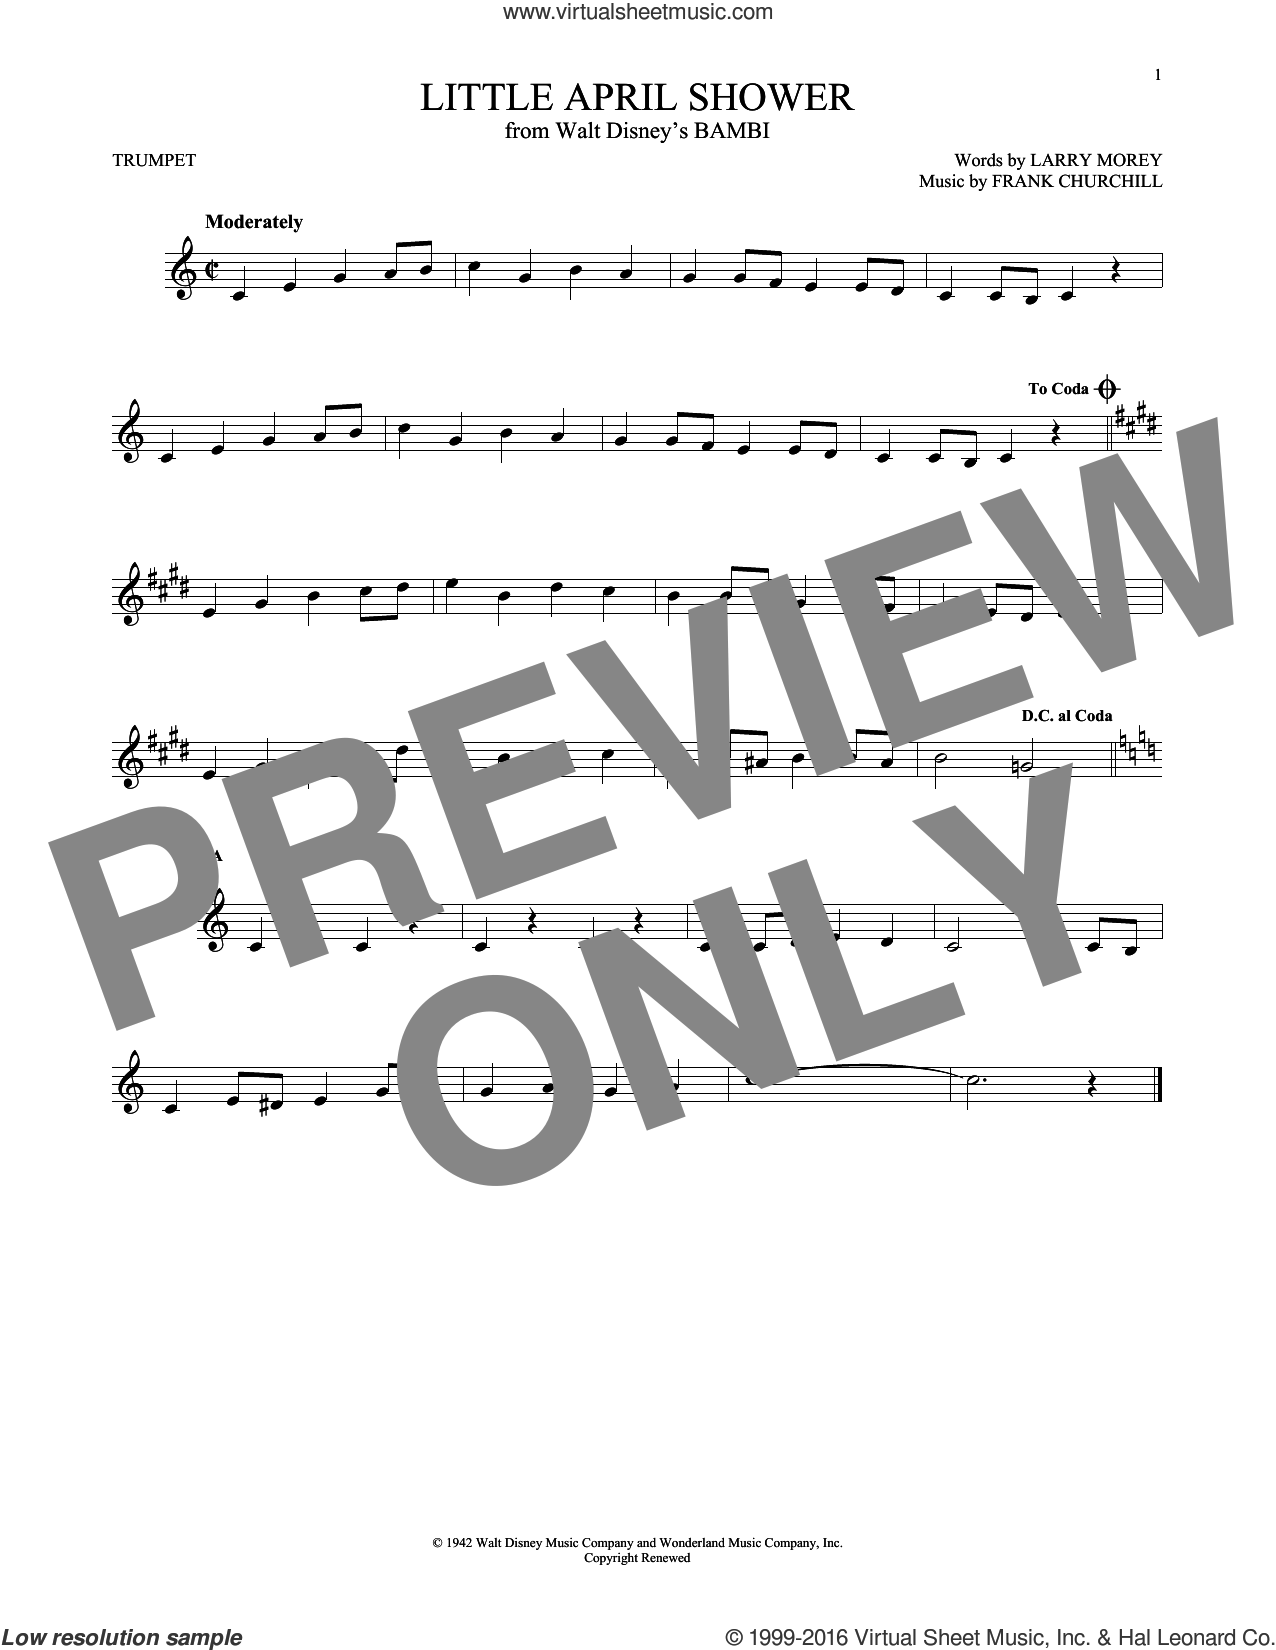 Little April Shower sheet music for trumpet solo by Larry Morey and Frank Churchill, intermediate skill level